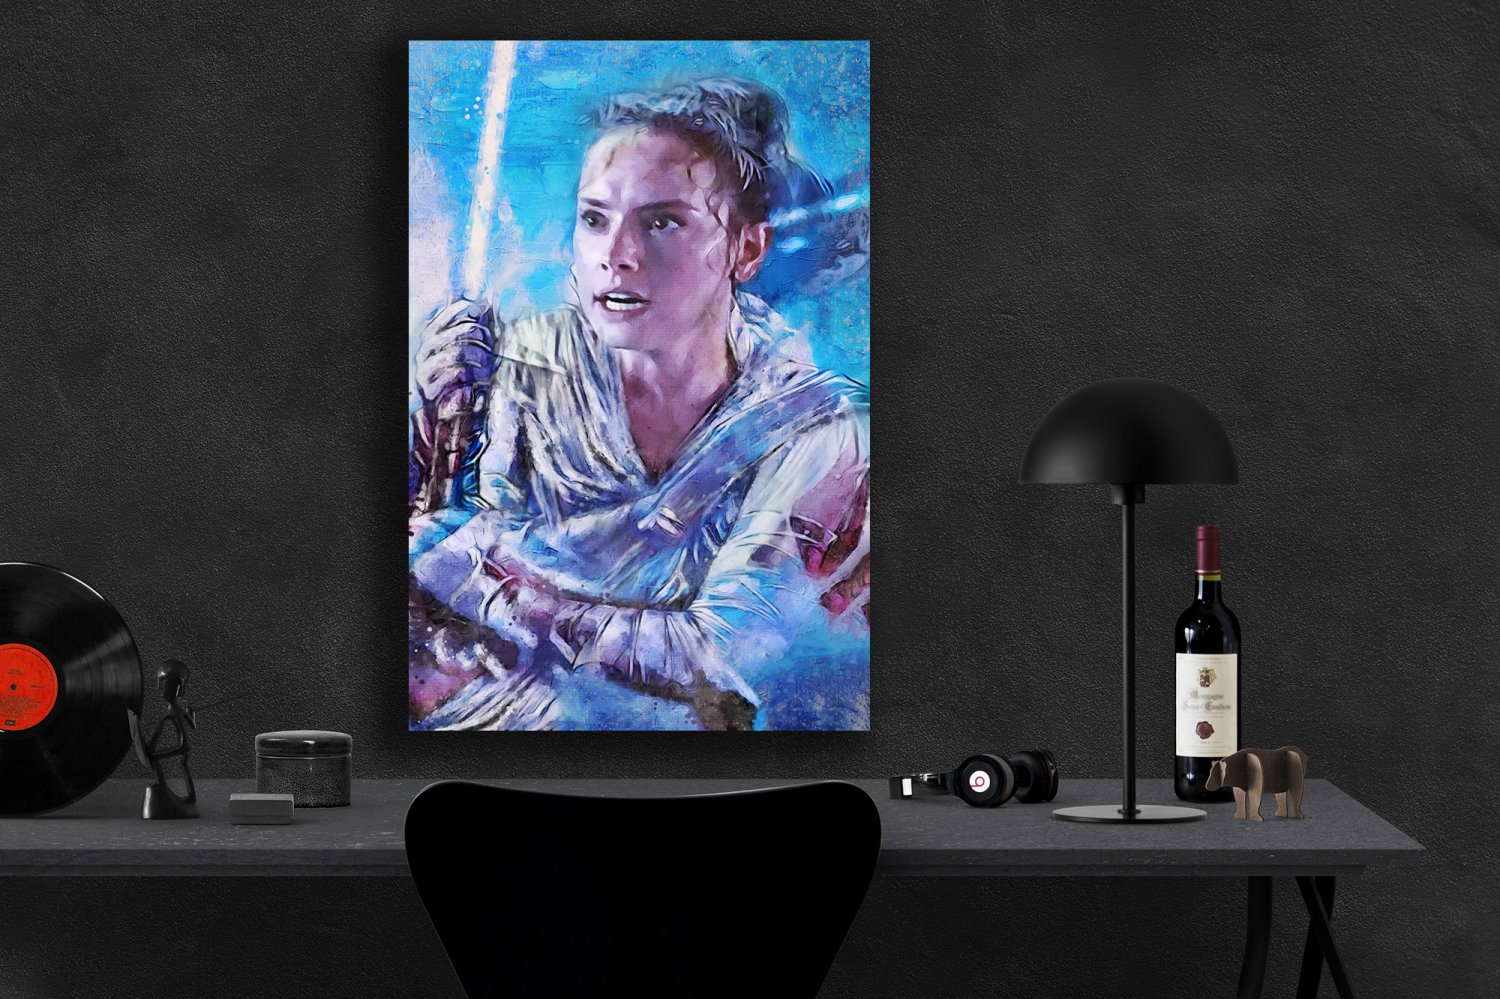 Star Wars The Rise of Skywalker, Rey, Daisy Ridley  24x35 inches Canvas Print